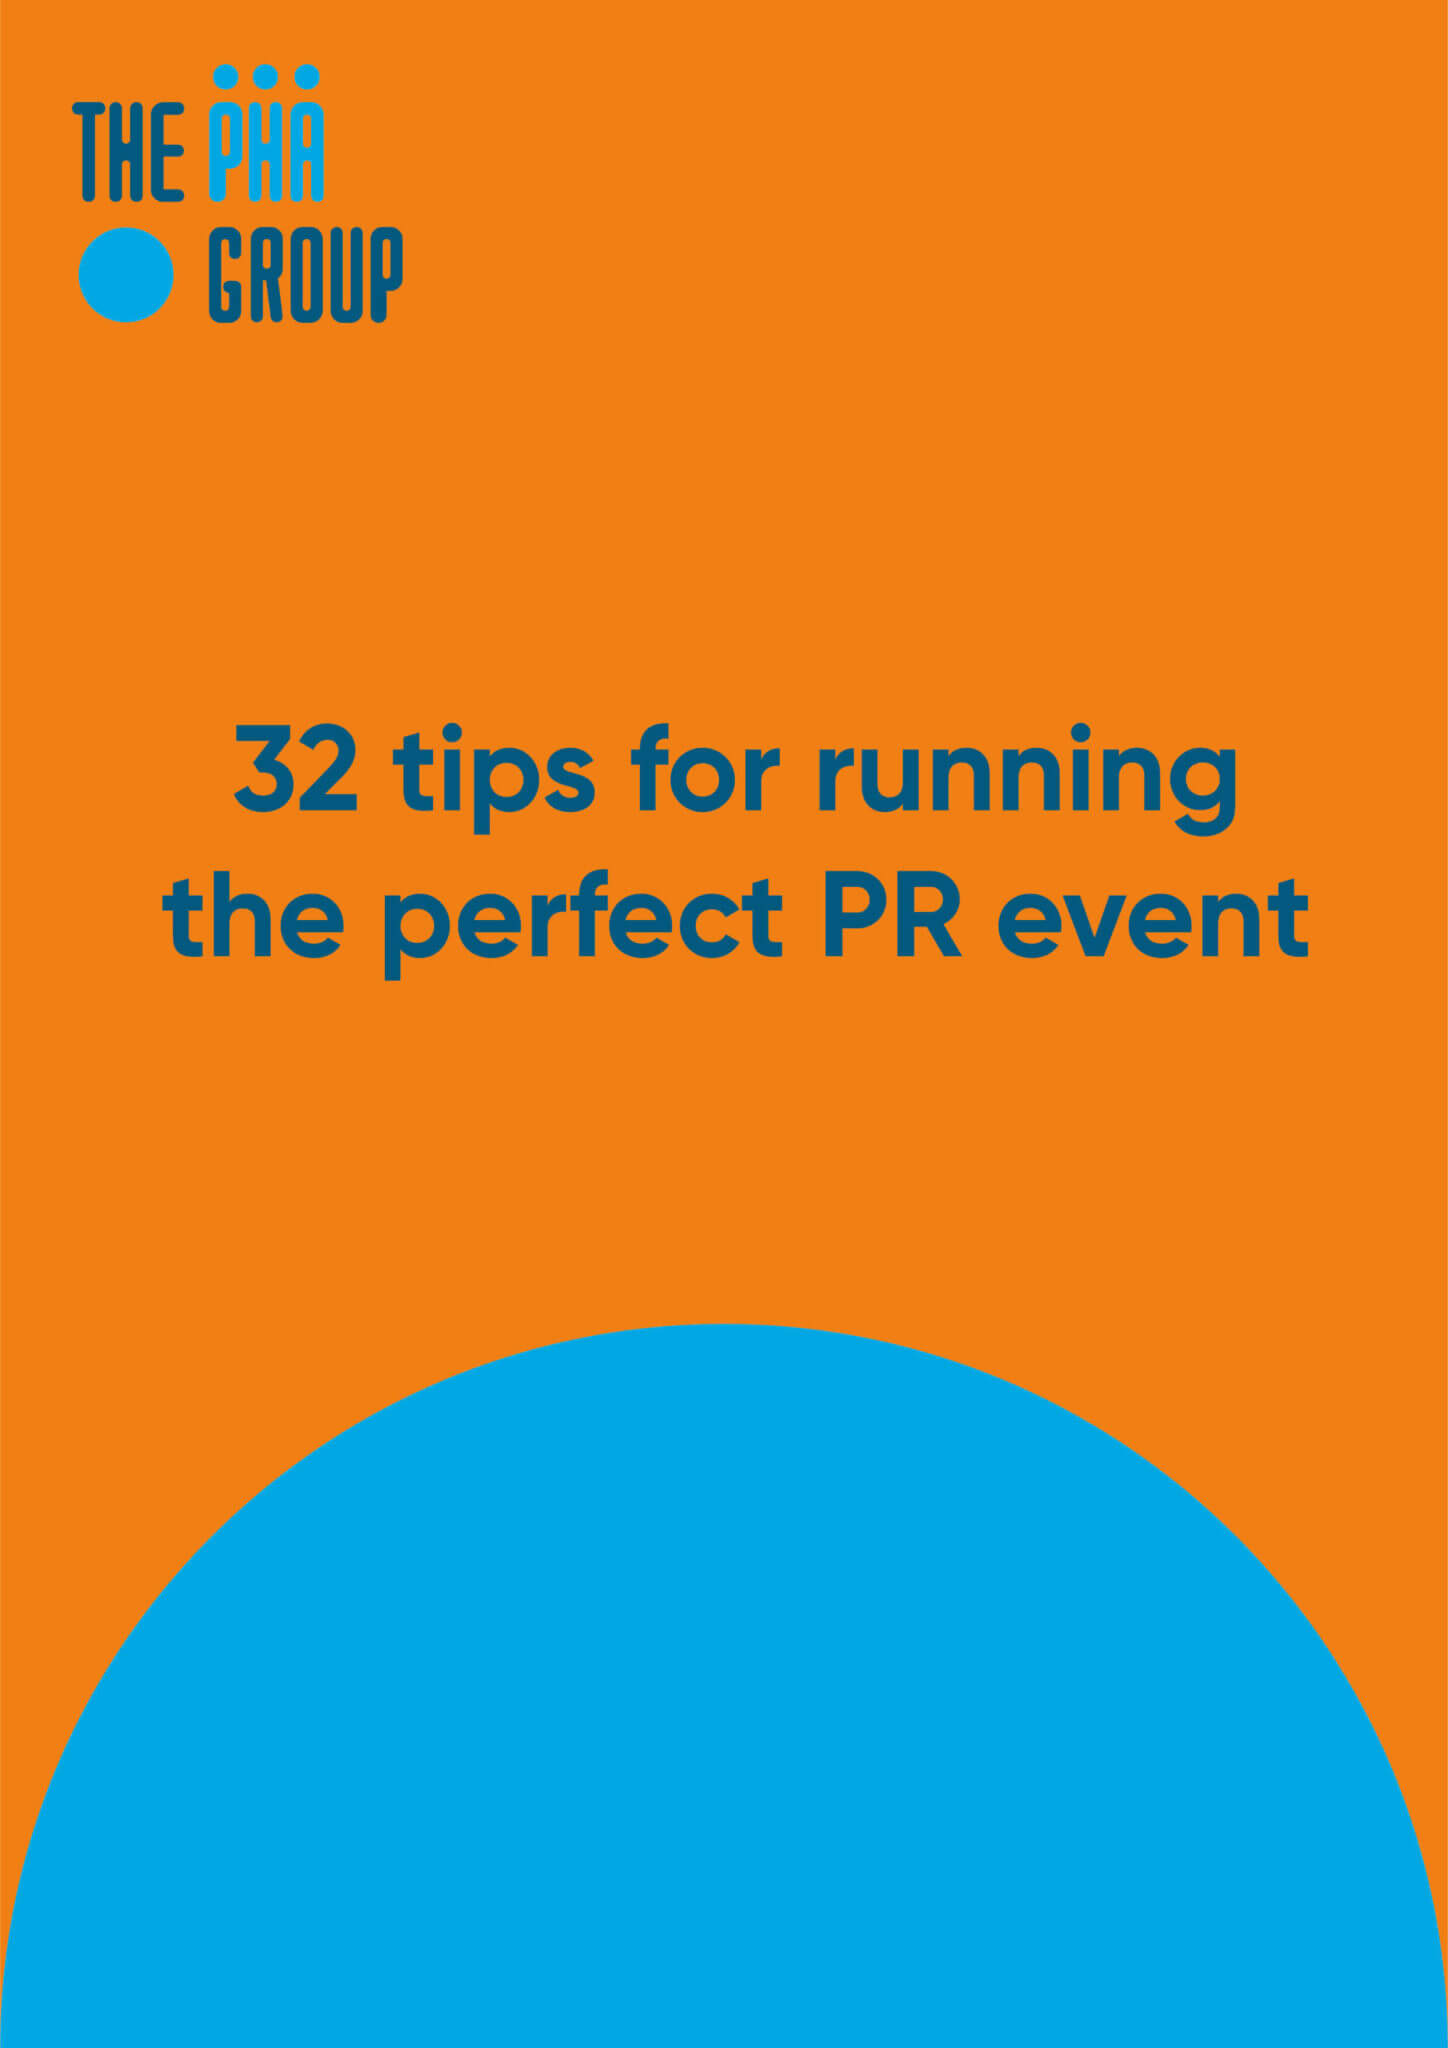 32 tips for running the perfect PR event